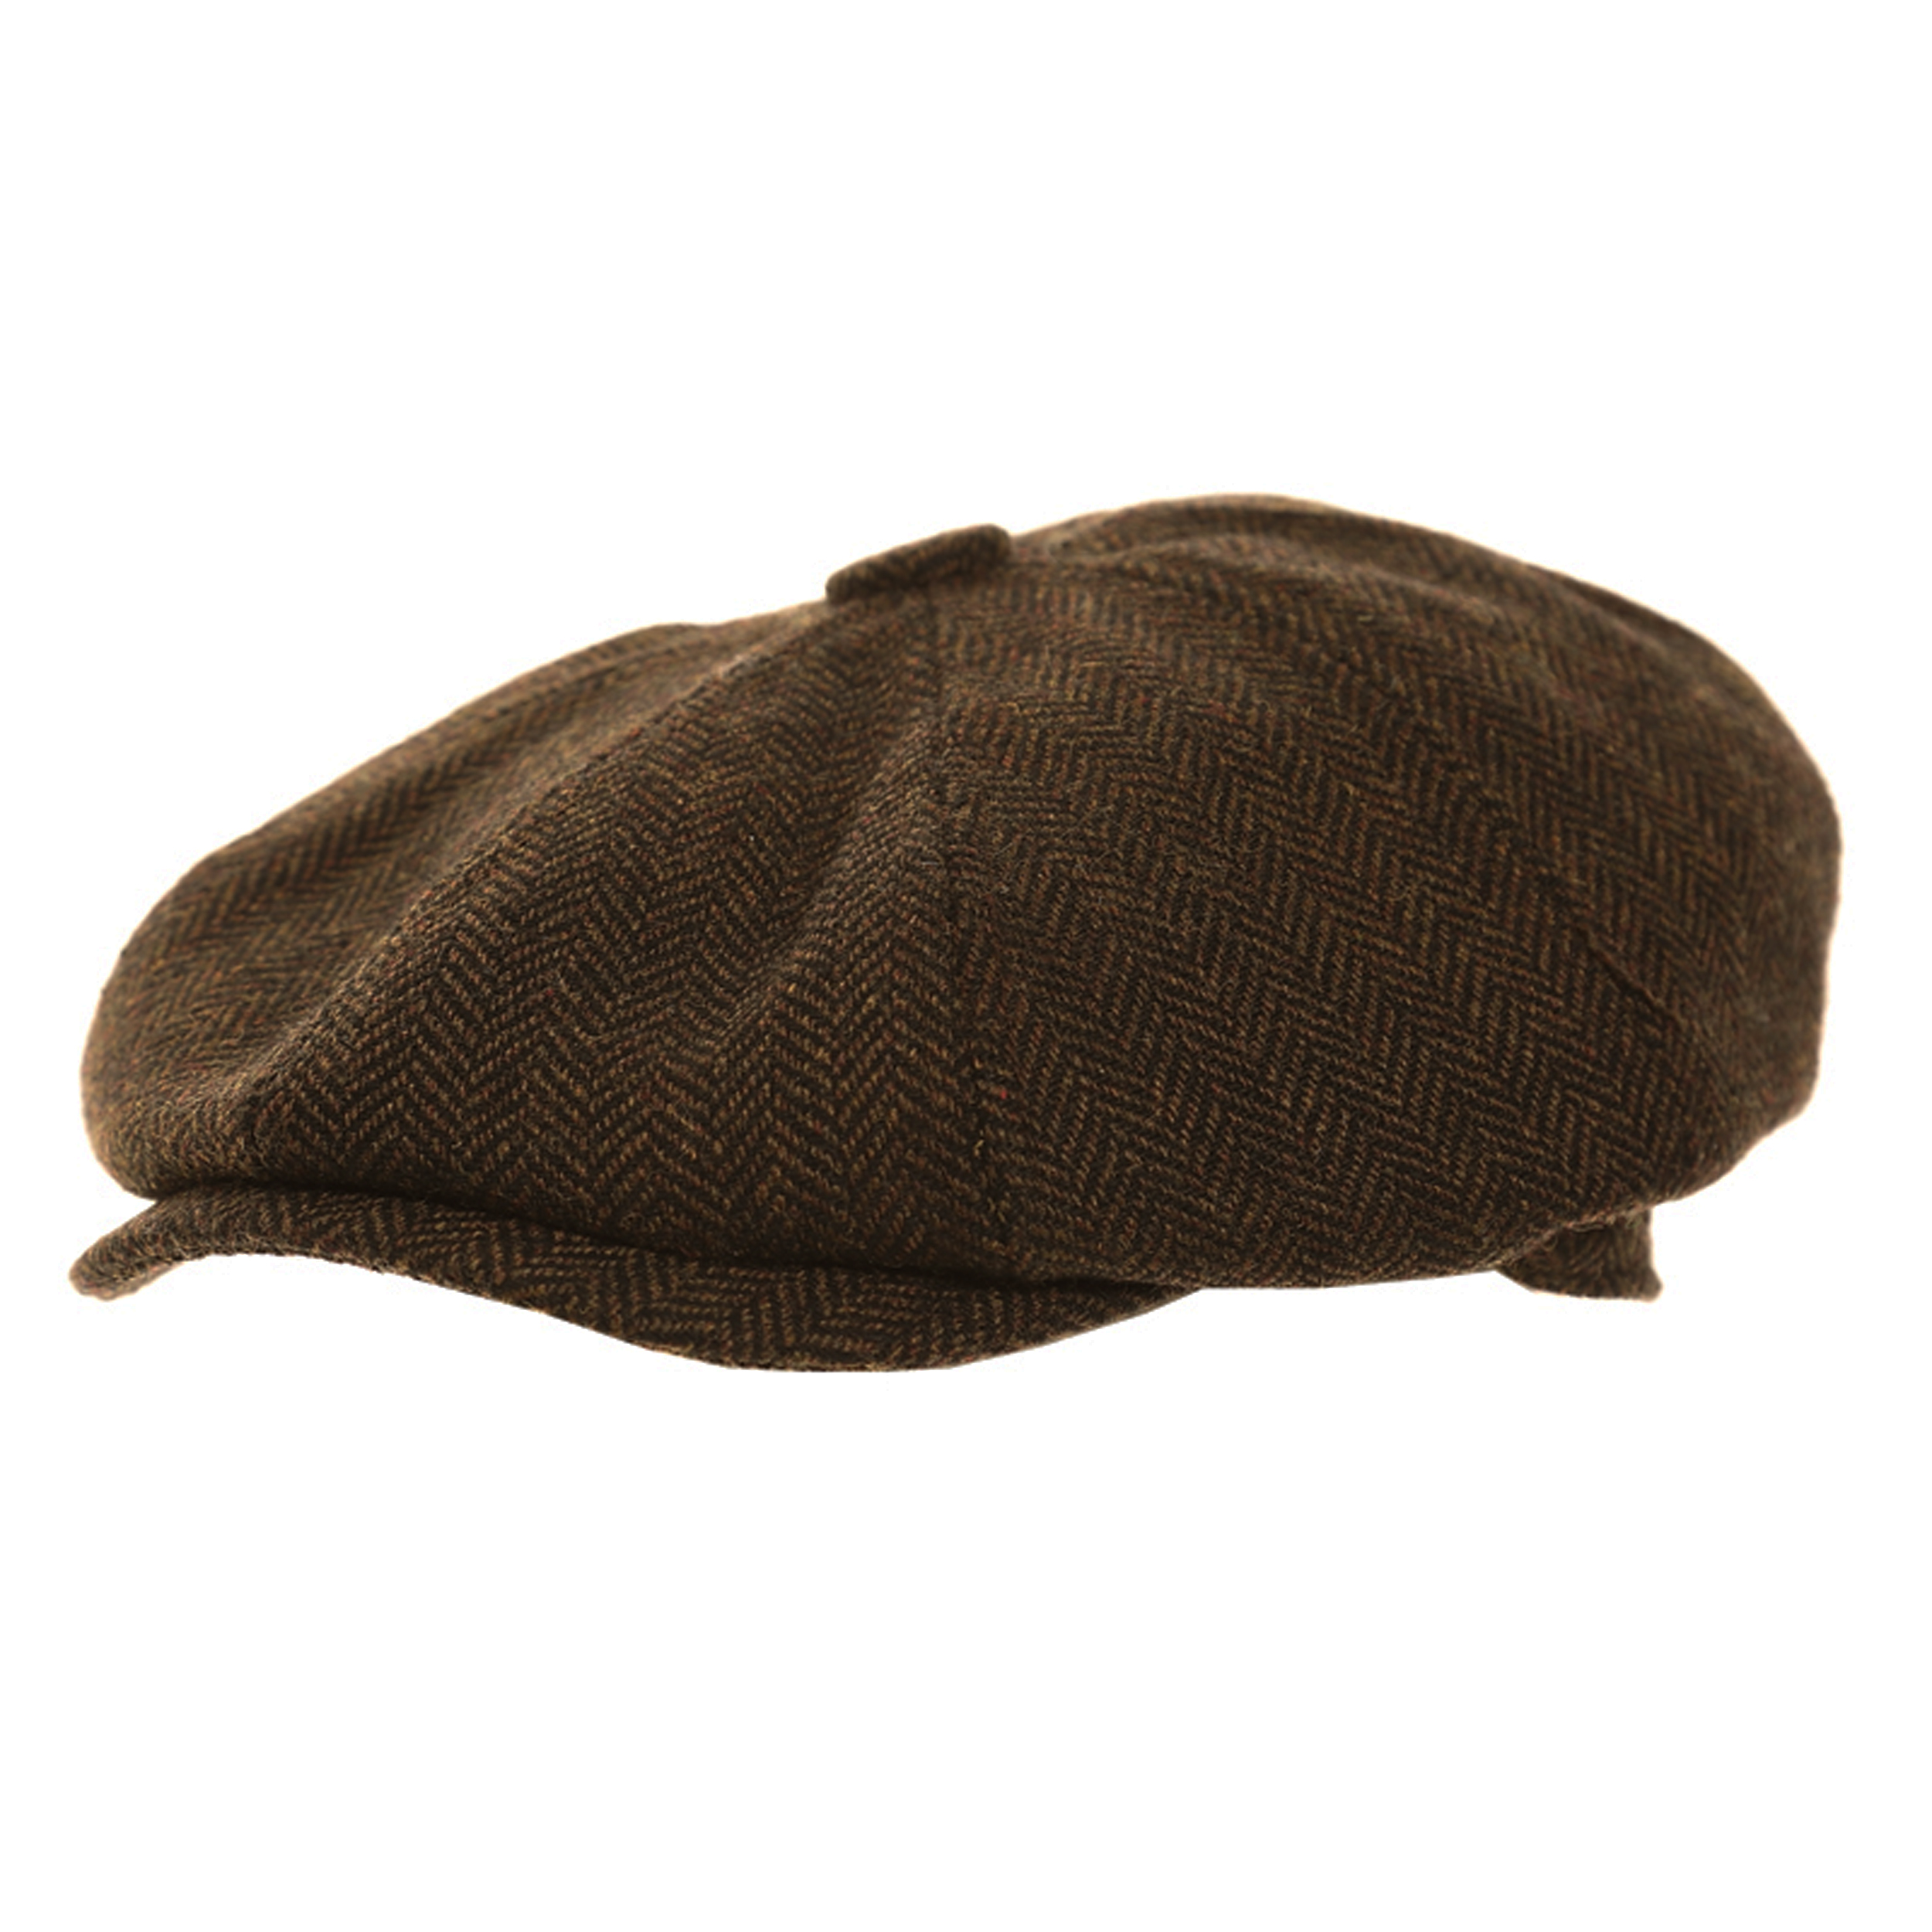 dd7ee8f2b6c ... Men s Herringbone Tweed Wool Blend Peaky Blinders Gatsby Flat Cap 57cm  Brown. About this product. Picture 1 of 2  Picture 2 of 2